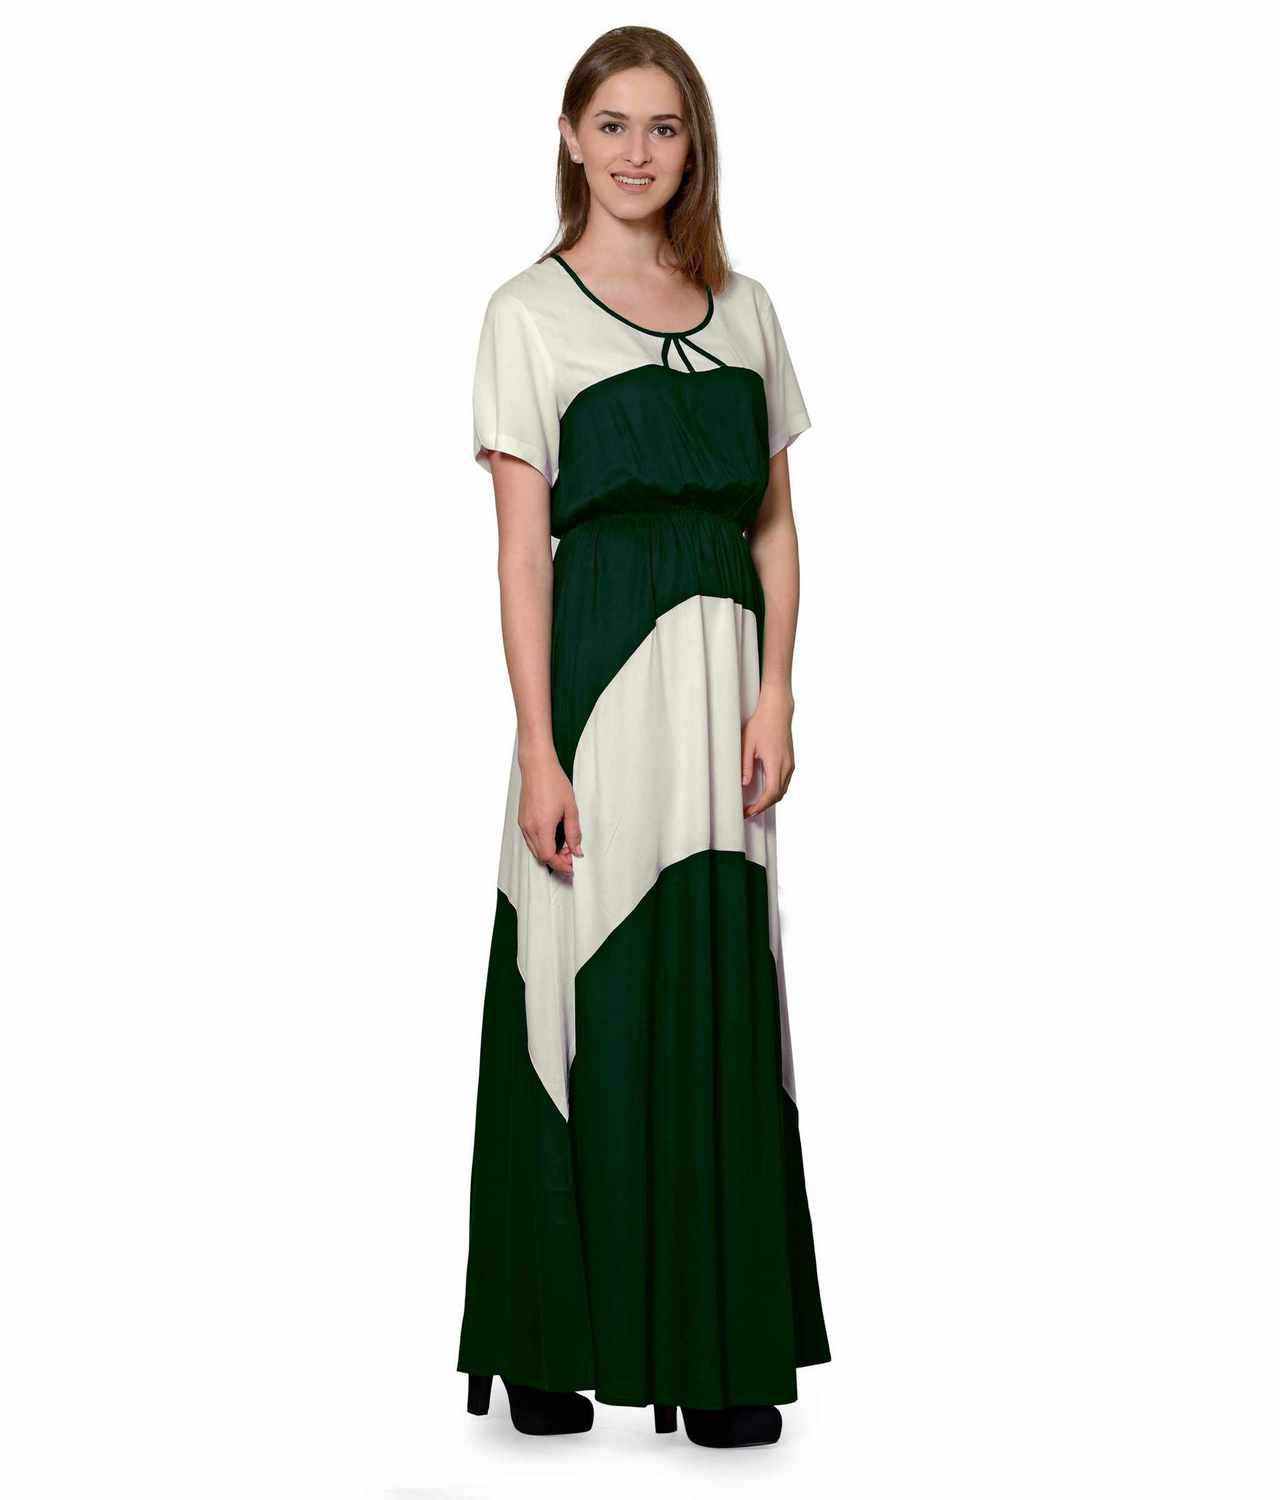 Color Block Slim Fit Maxi Dress Gown in Off-White:Bottle Green